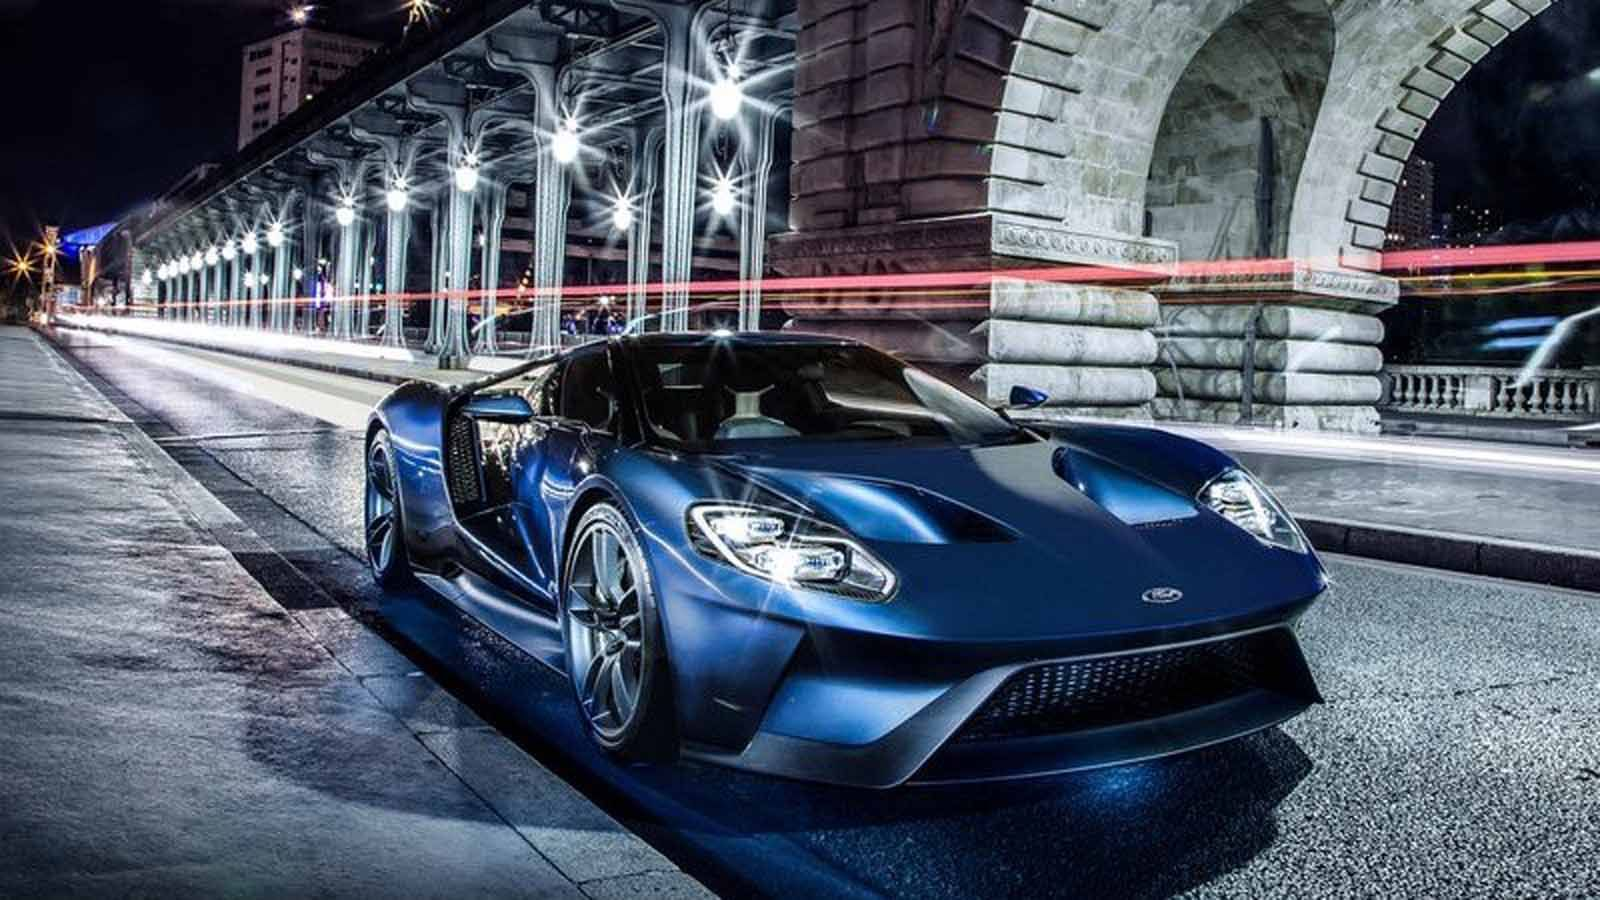 Ford Gt Specs Finally Released Supercar Barges Into Ferrari